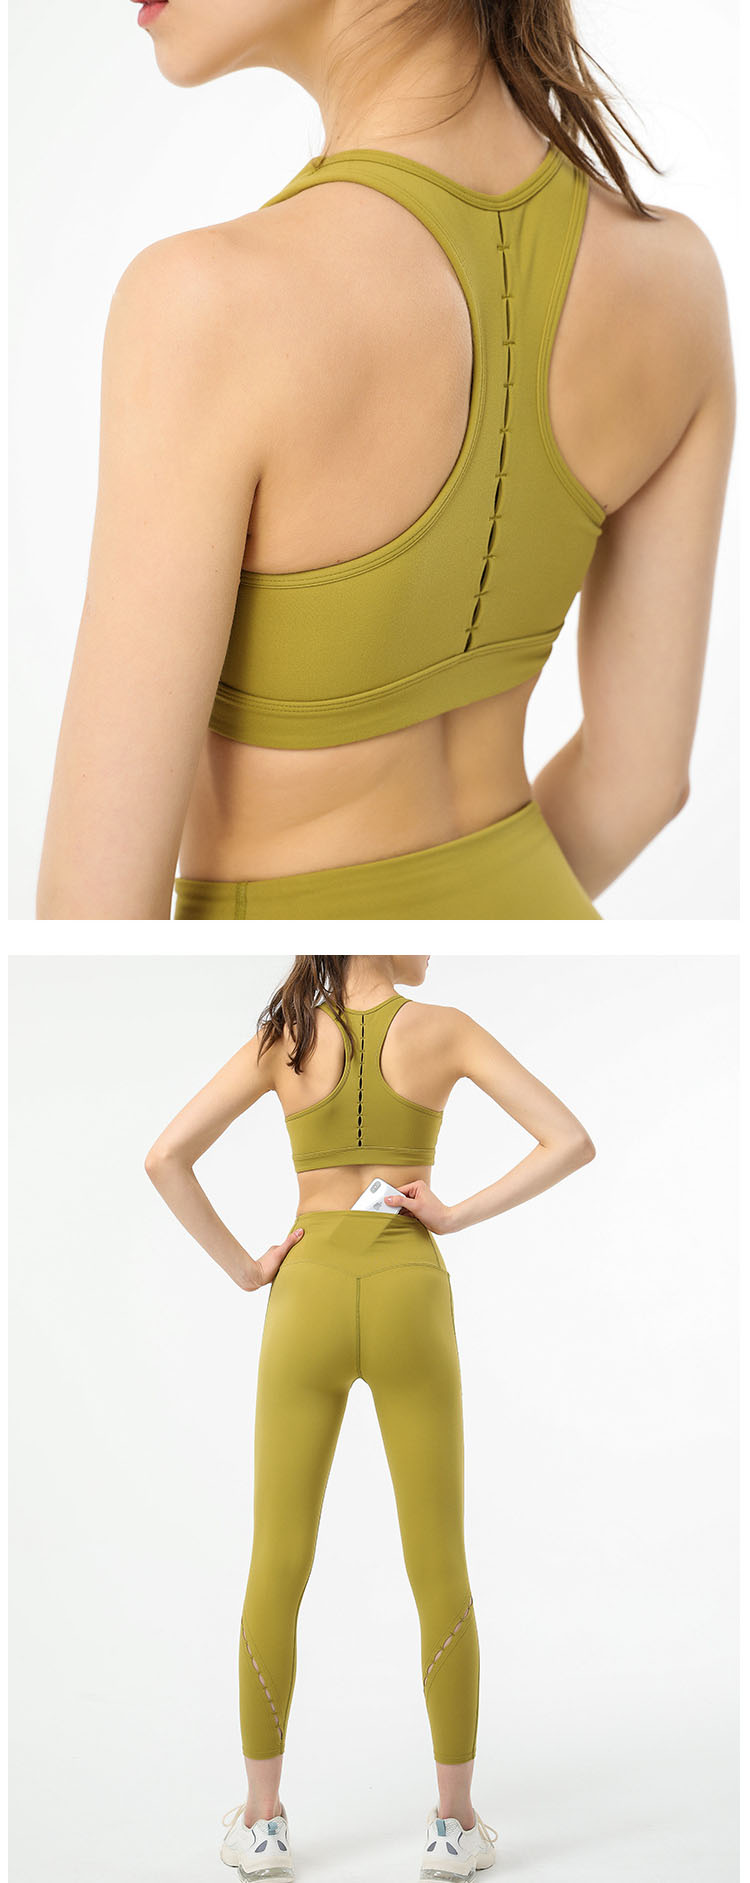 Professional sports fabrics, soft and comfortable without restraint, exercise freely.